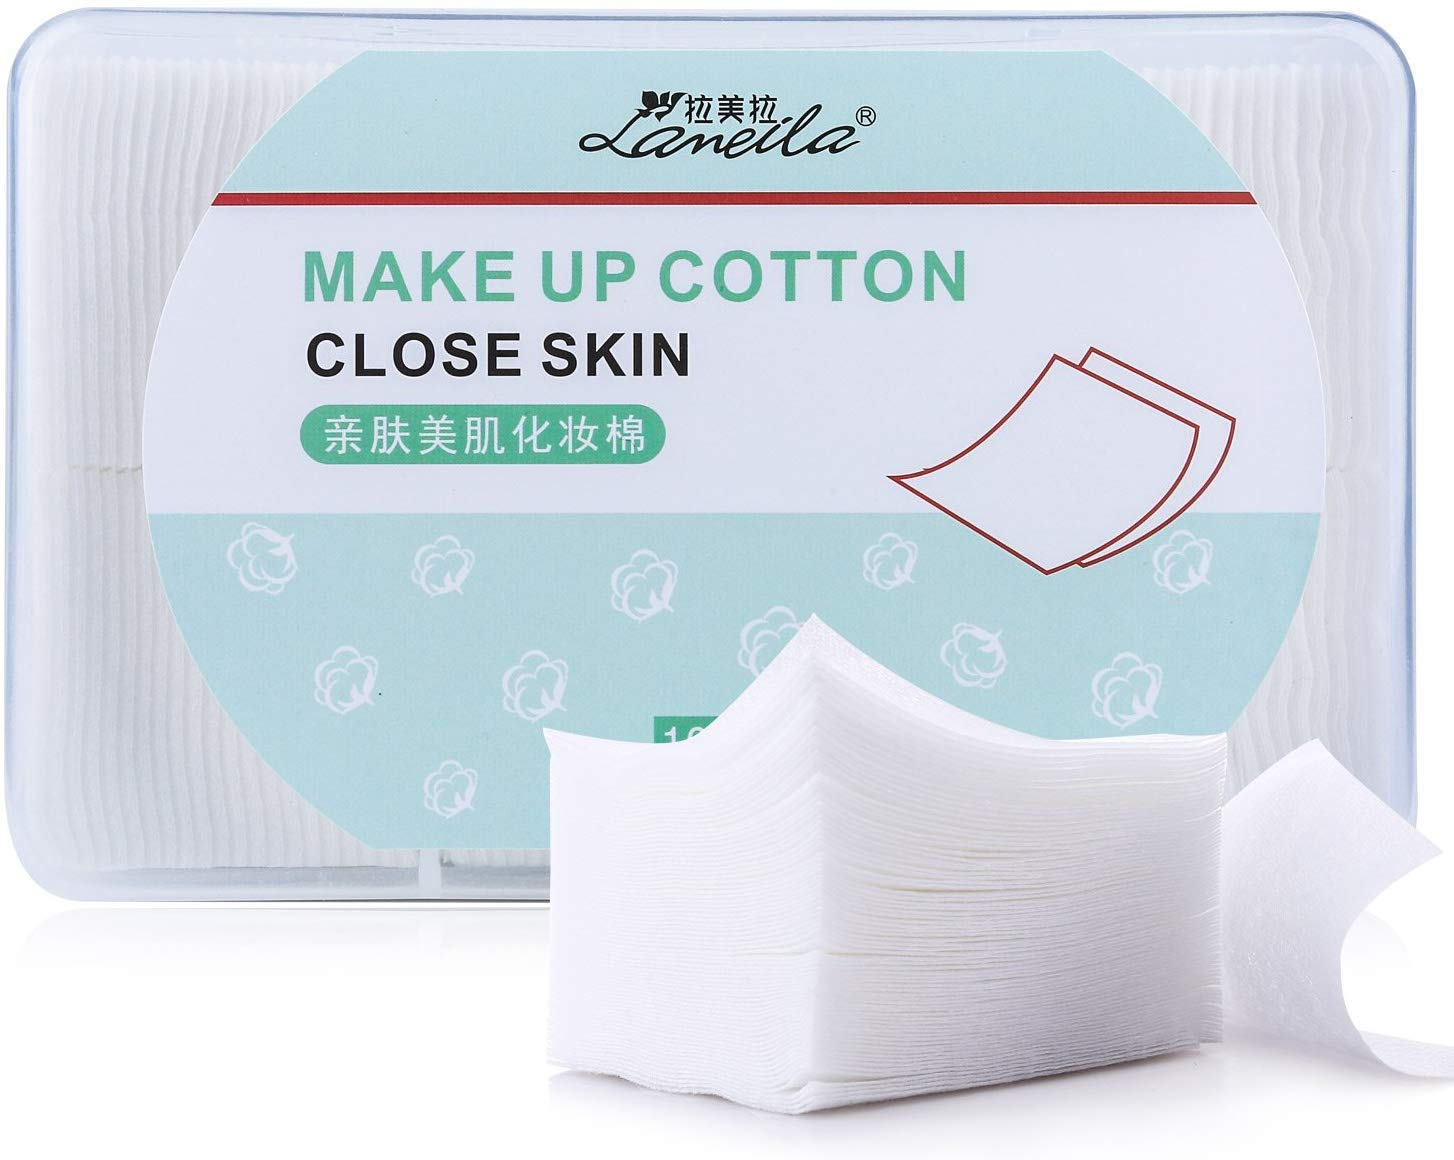 1000pcs Makeup Facial Cotton pads, nail polish remover pads, lint free Nail Wipes facial eye make up wipes, square cosmetic cotton pads, Non-woven cotton Makeup Remover, Random Color